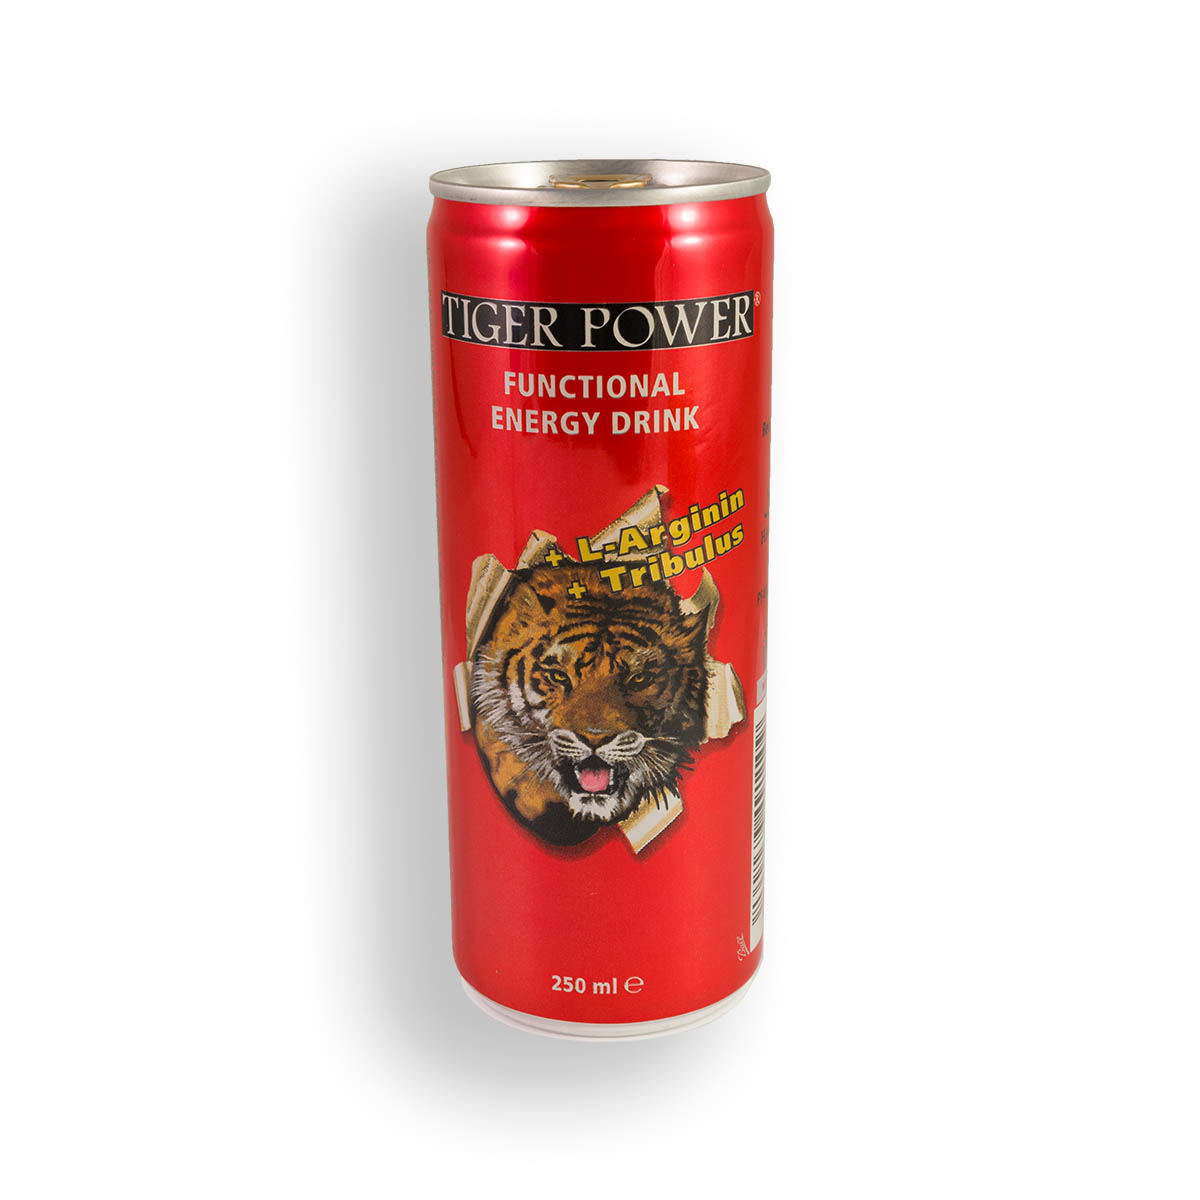 Tiger Power Functional Energy Drink